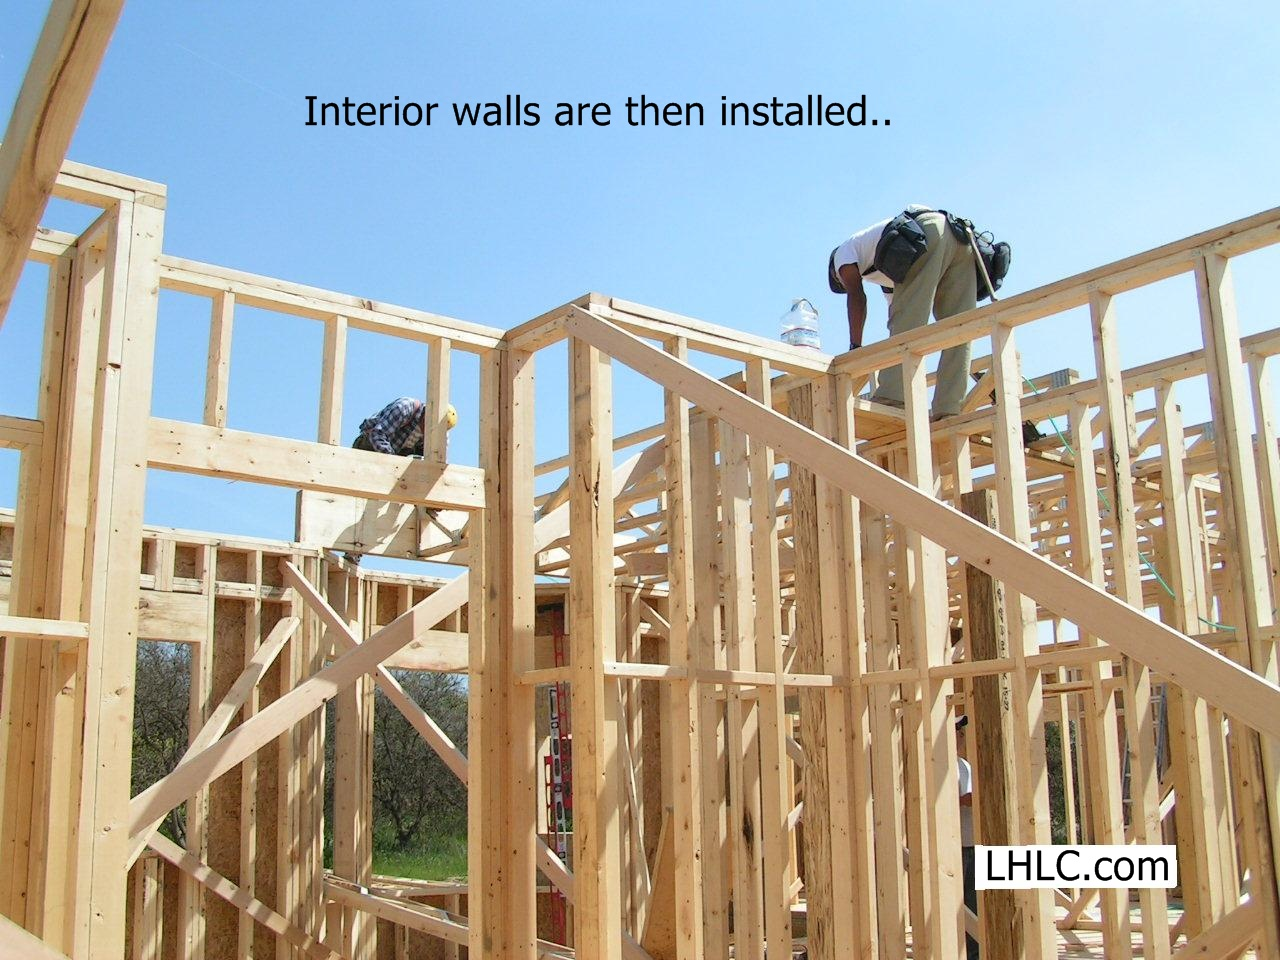 panelized interior walls are installed upper floor or roof system follows